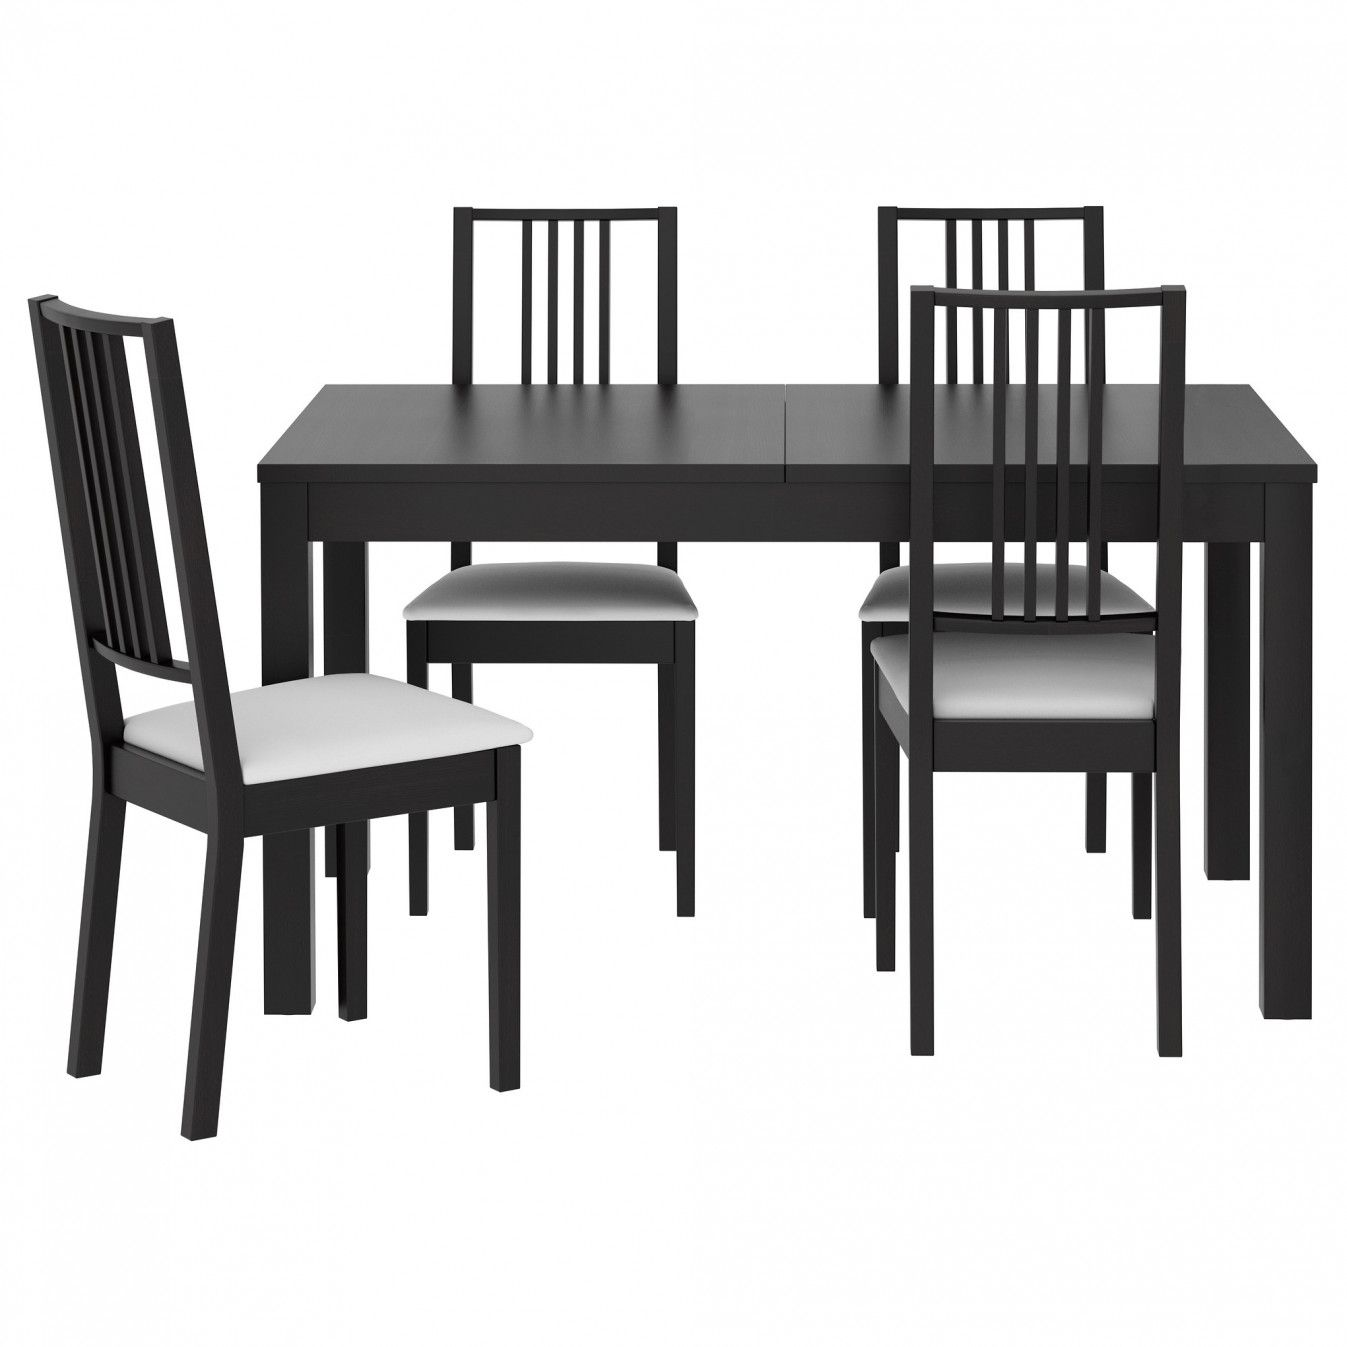 2018 ikea dining tables chairs rustic modern furniture check more at http